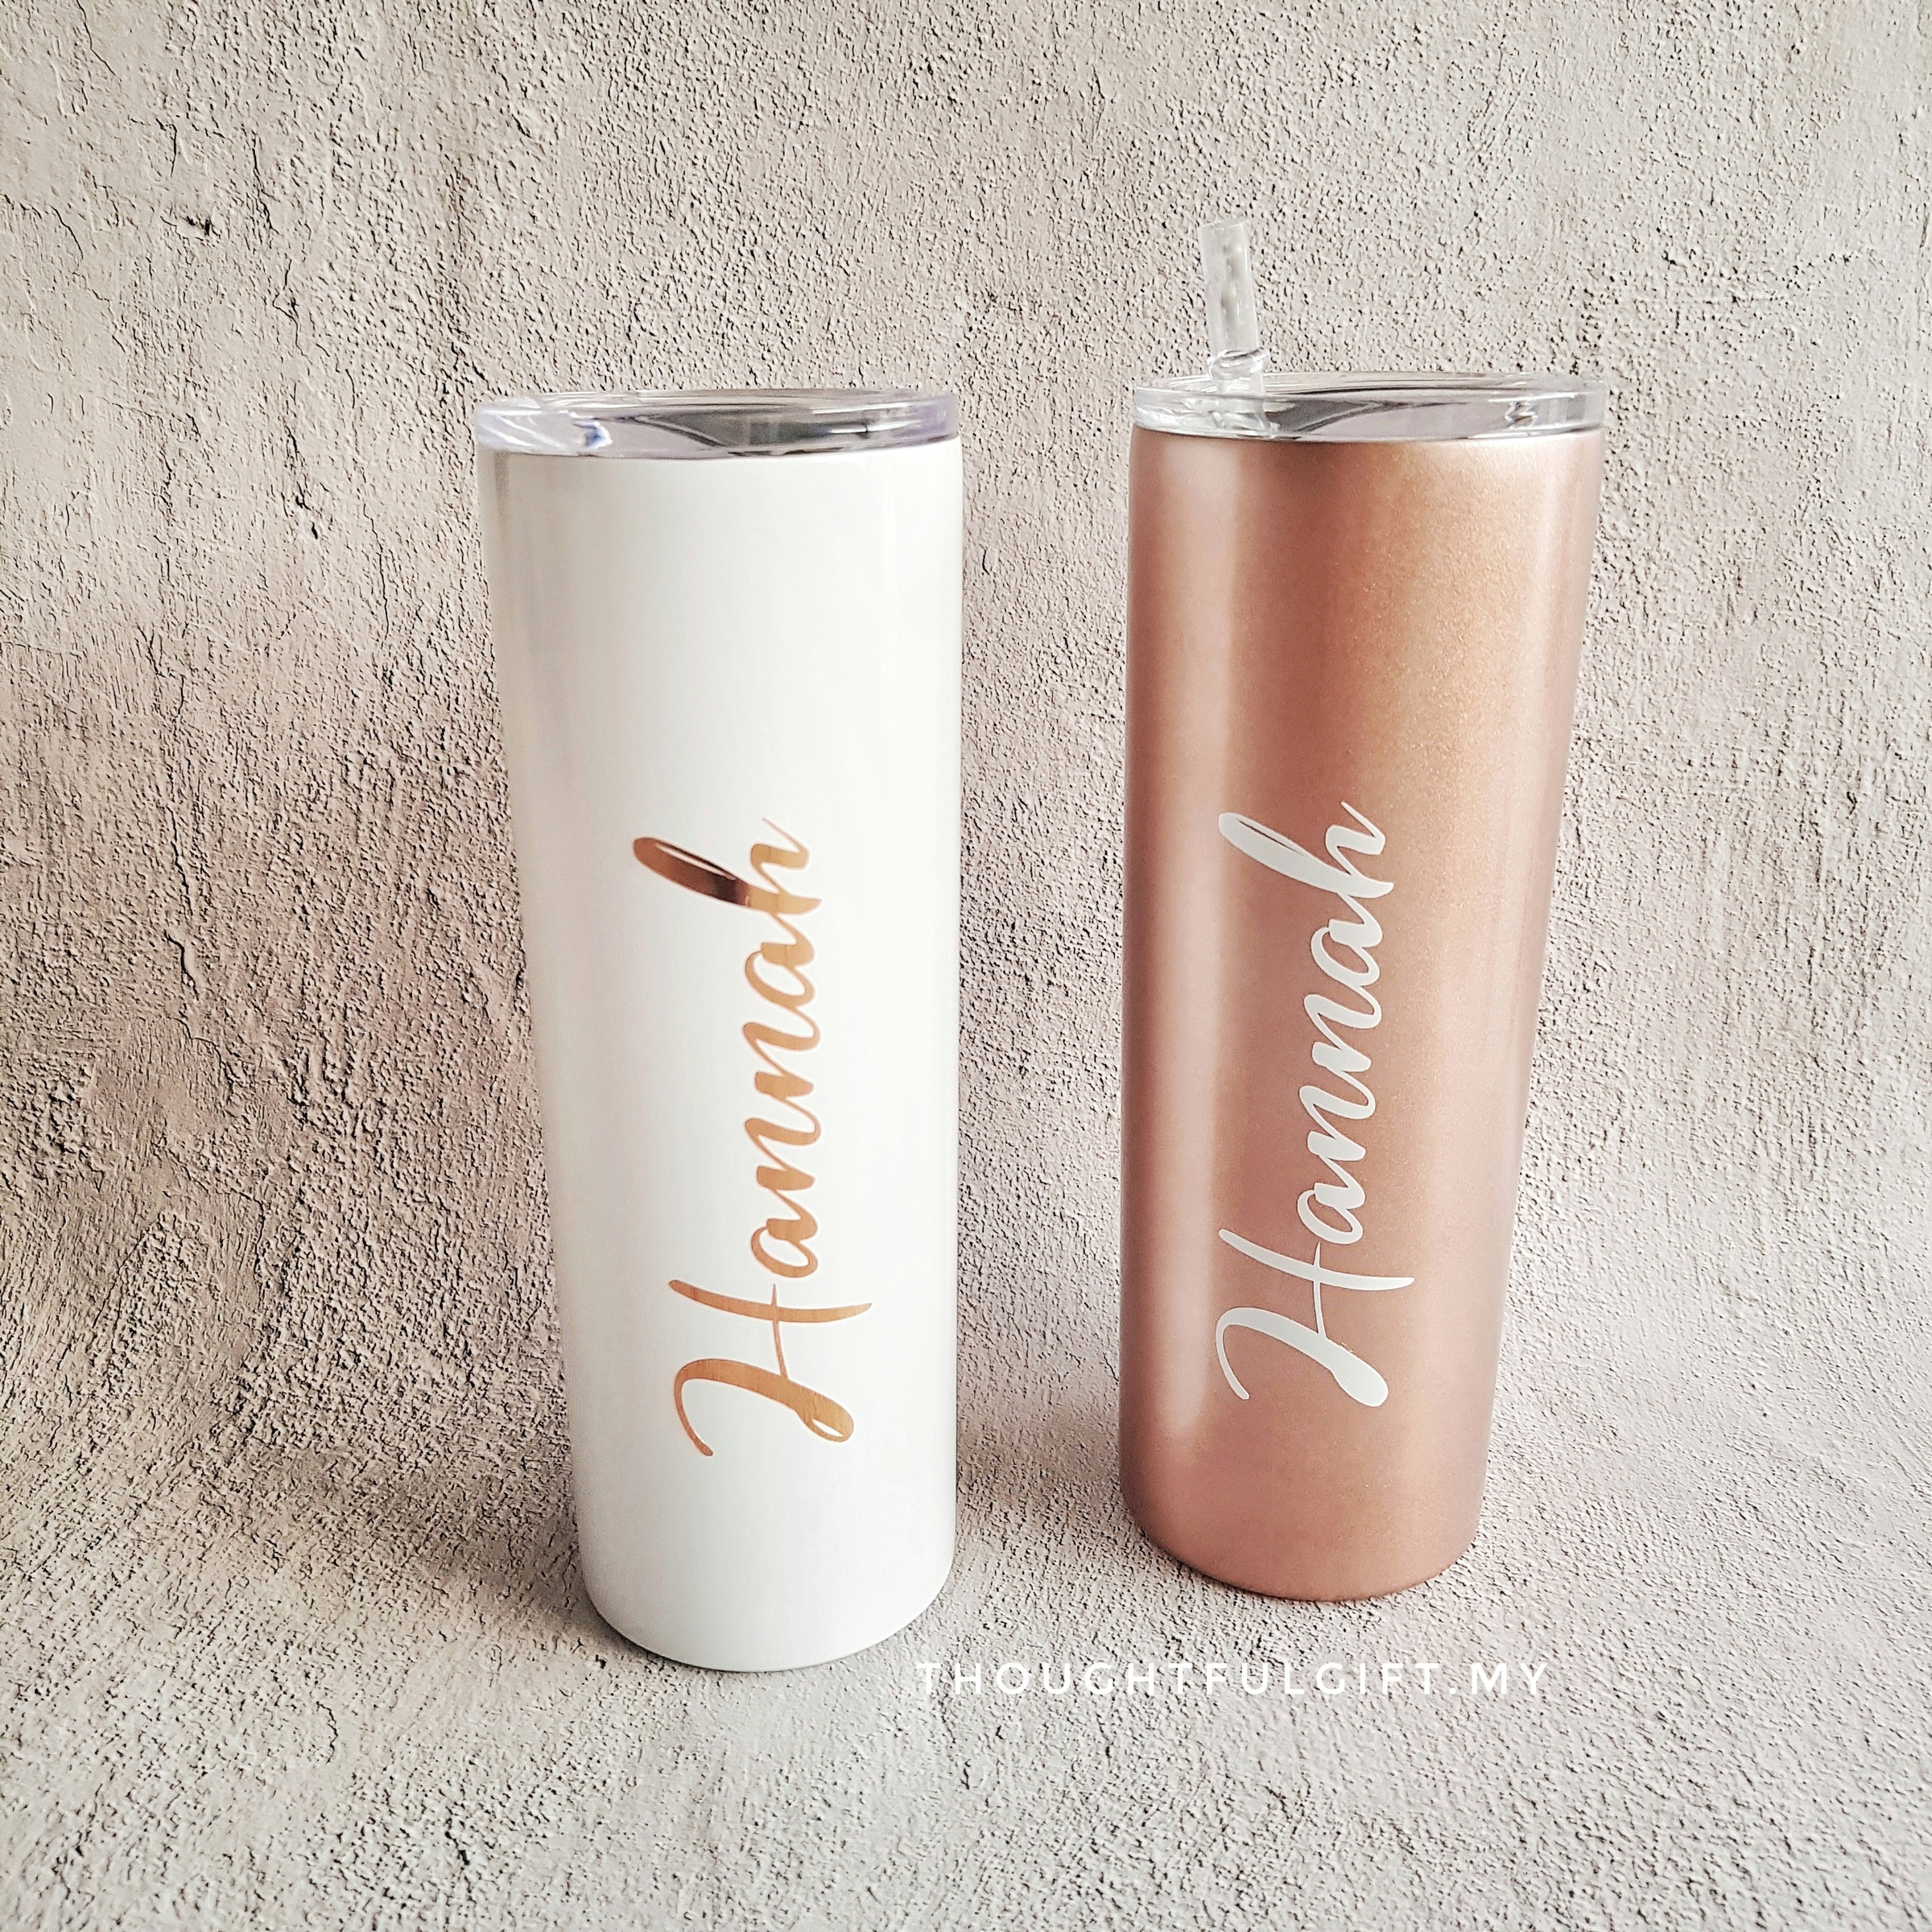 Thoughtfulgift | Our Collections - Personalized Drinkware